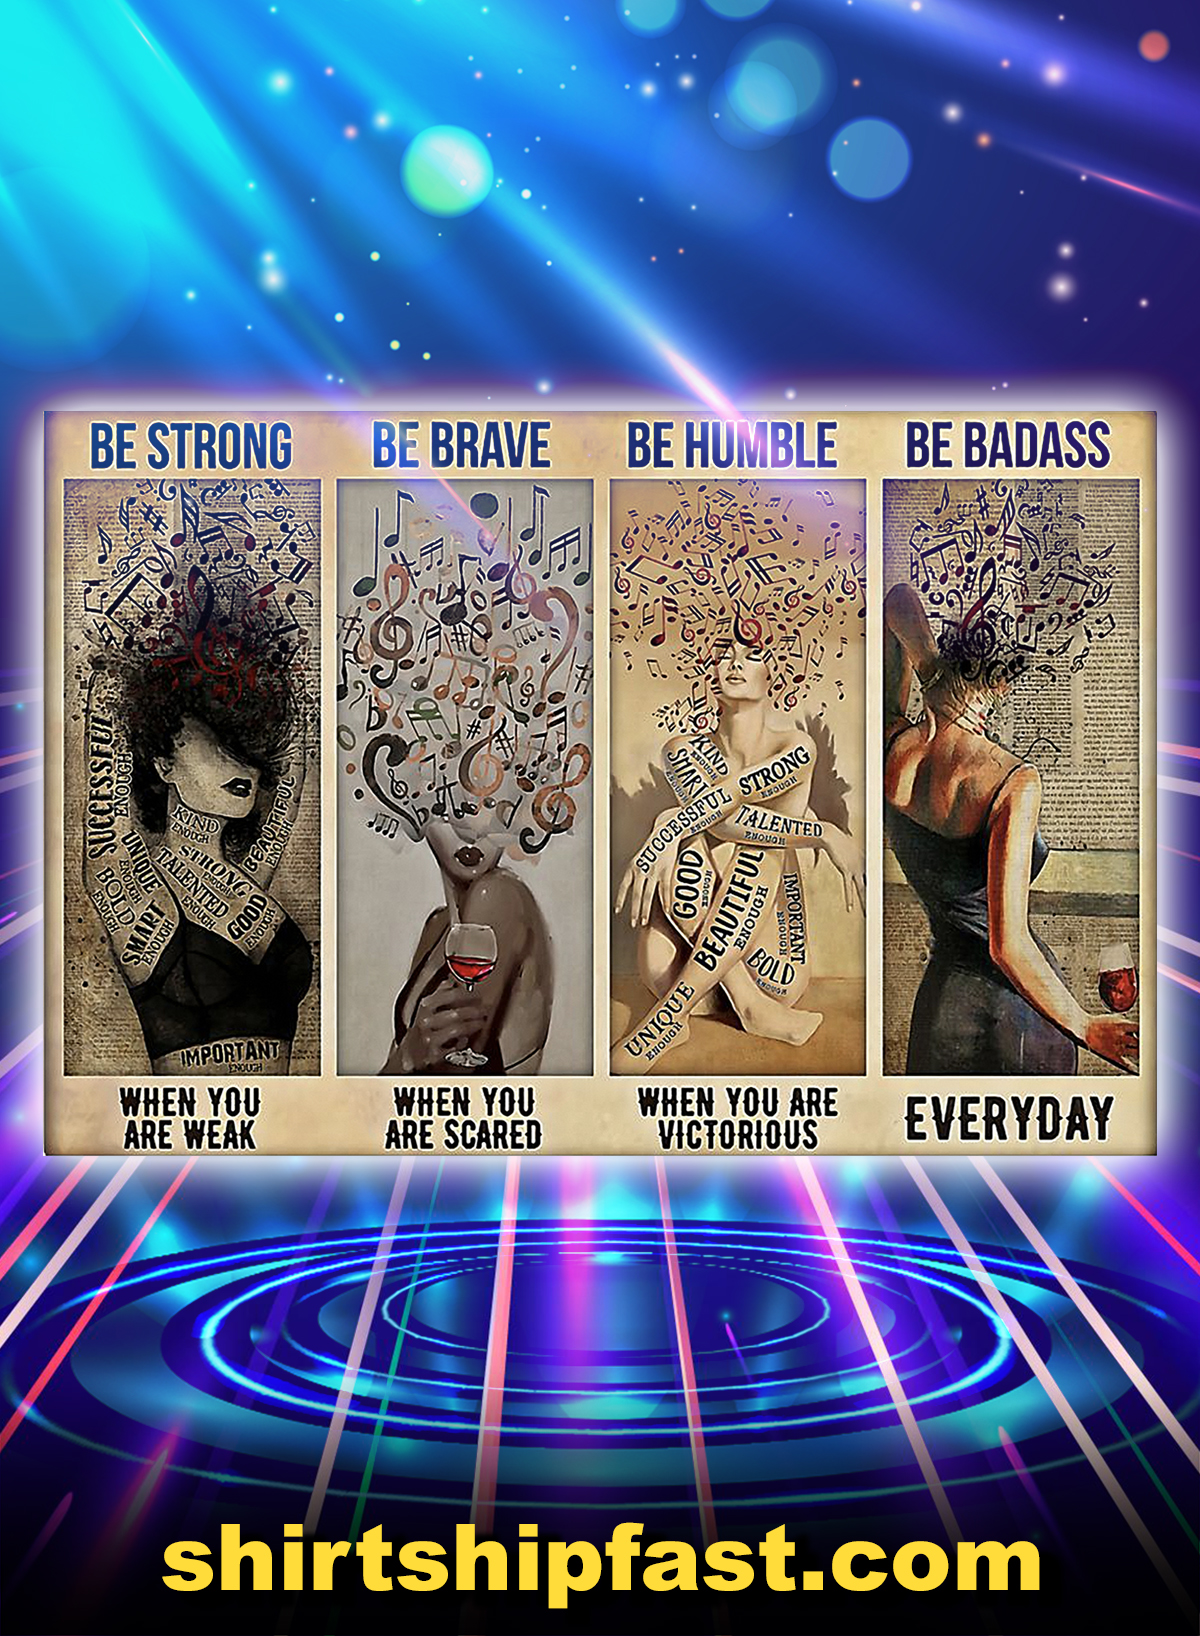 Girl and music be strong be brave be humble be badass poster - A4